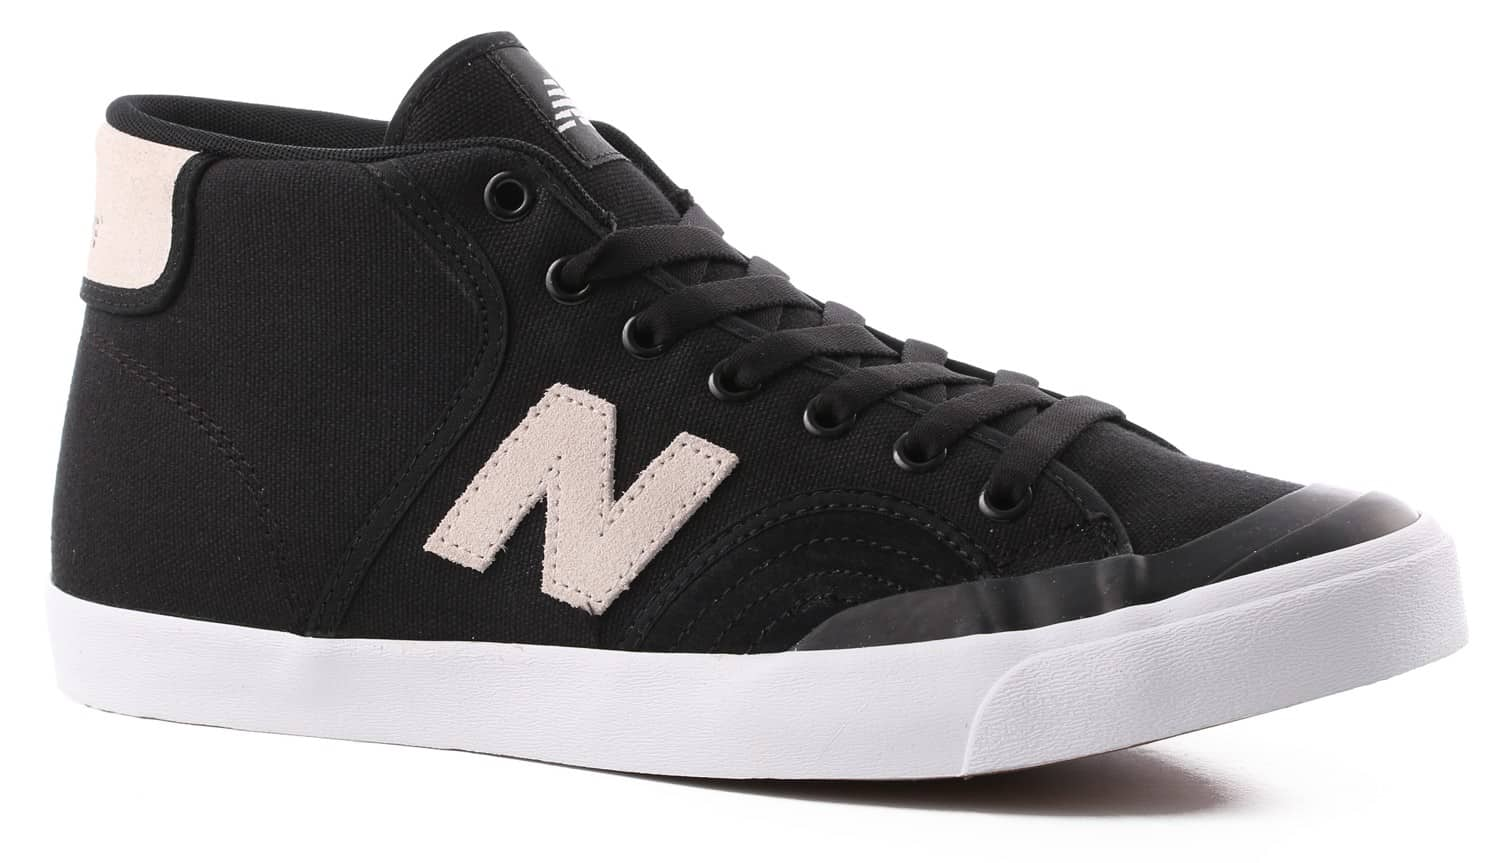 new balance skate shoes. new balance pro court 213 mid skate shoes - black/white